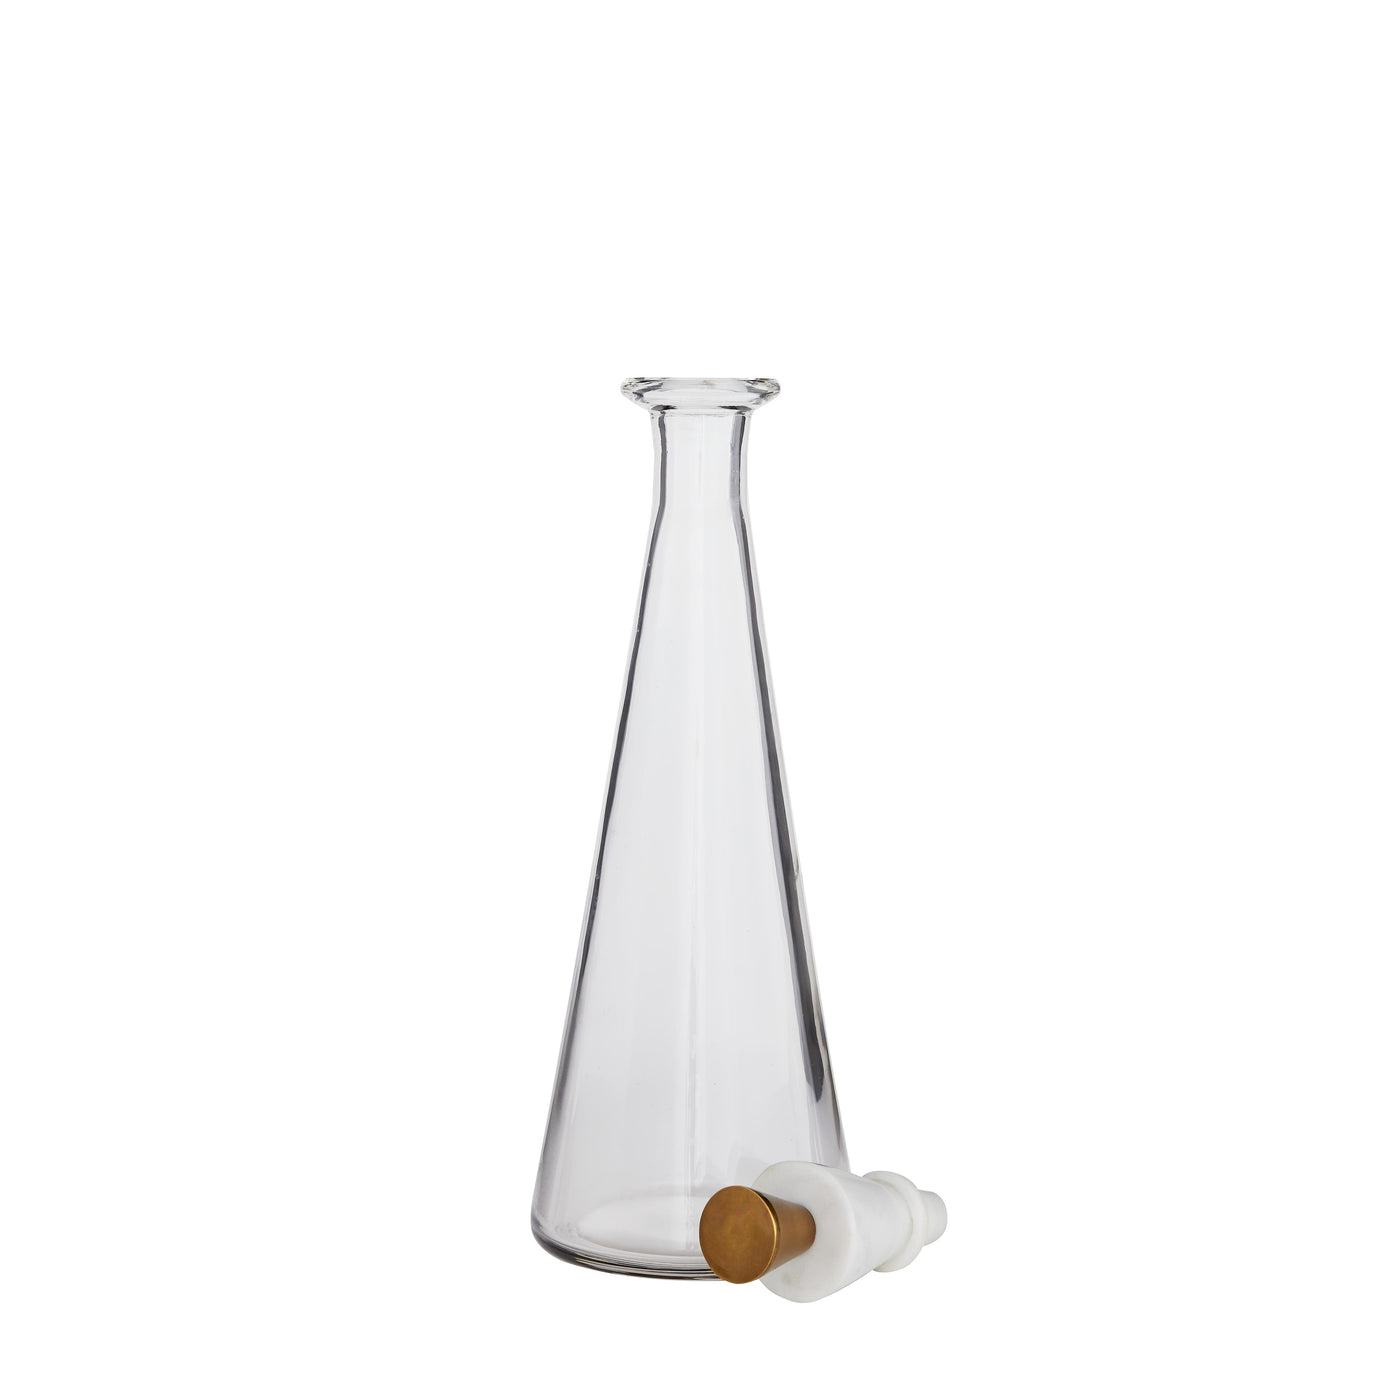 arteriors home Wilshire decanter set top off